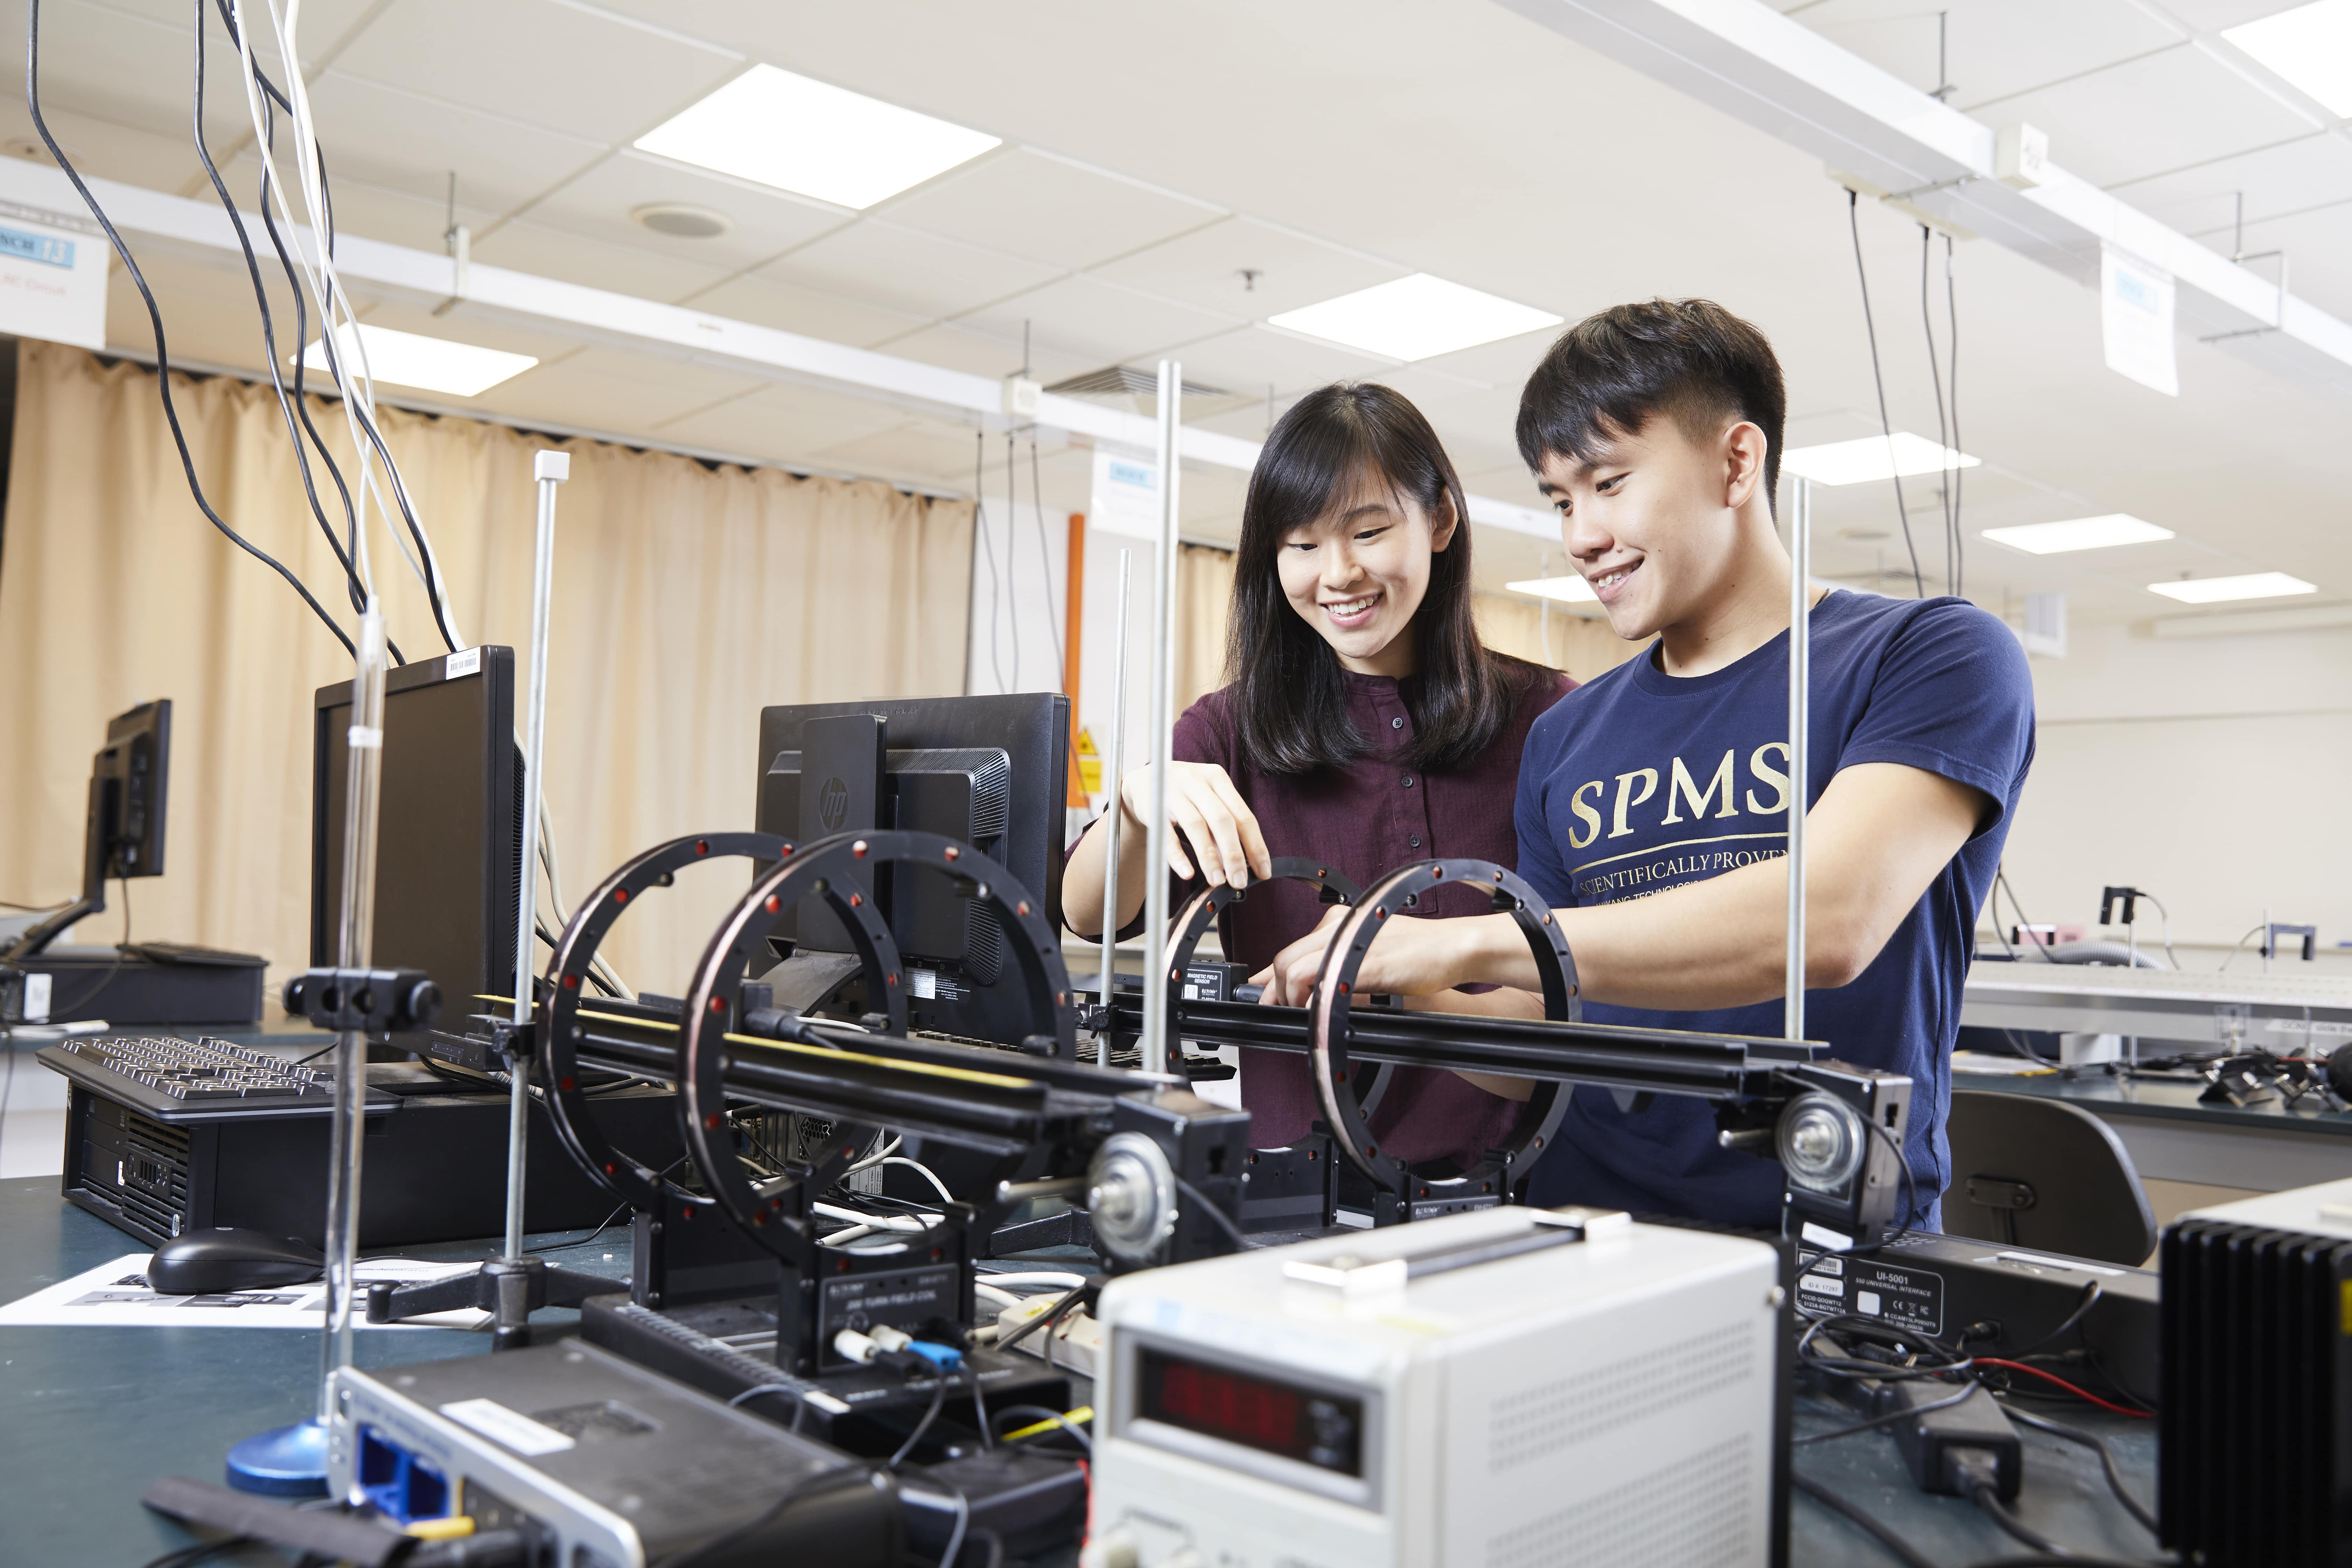 Two students in a SPMS lab